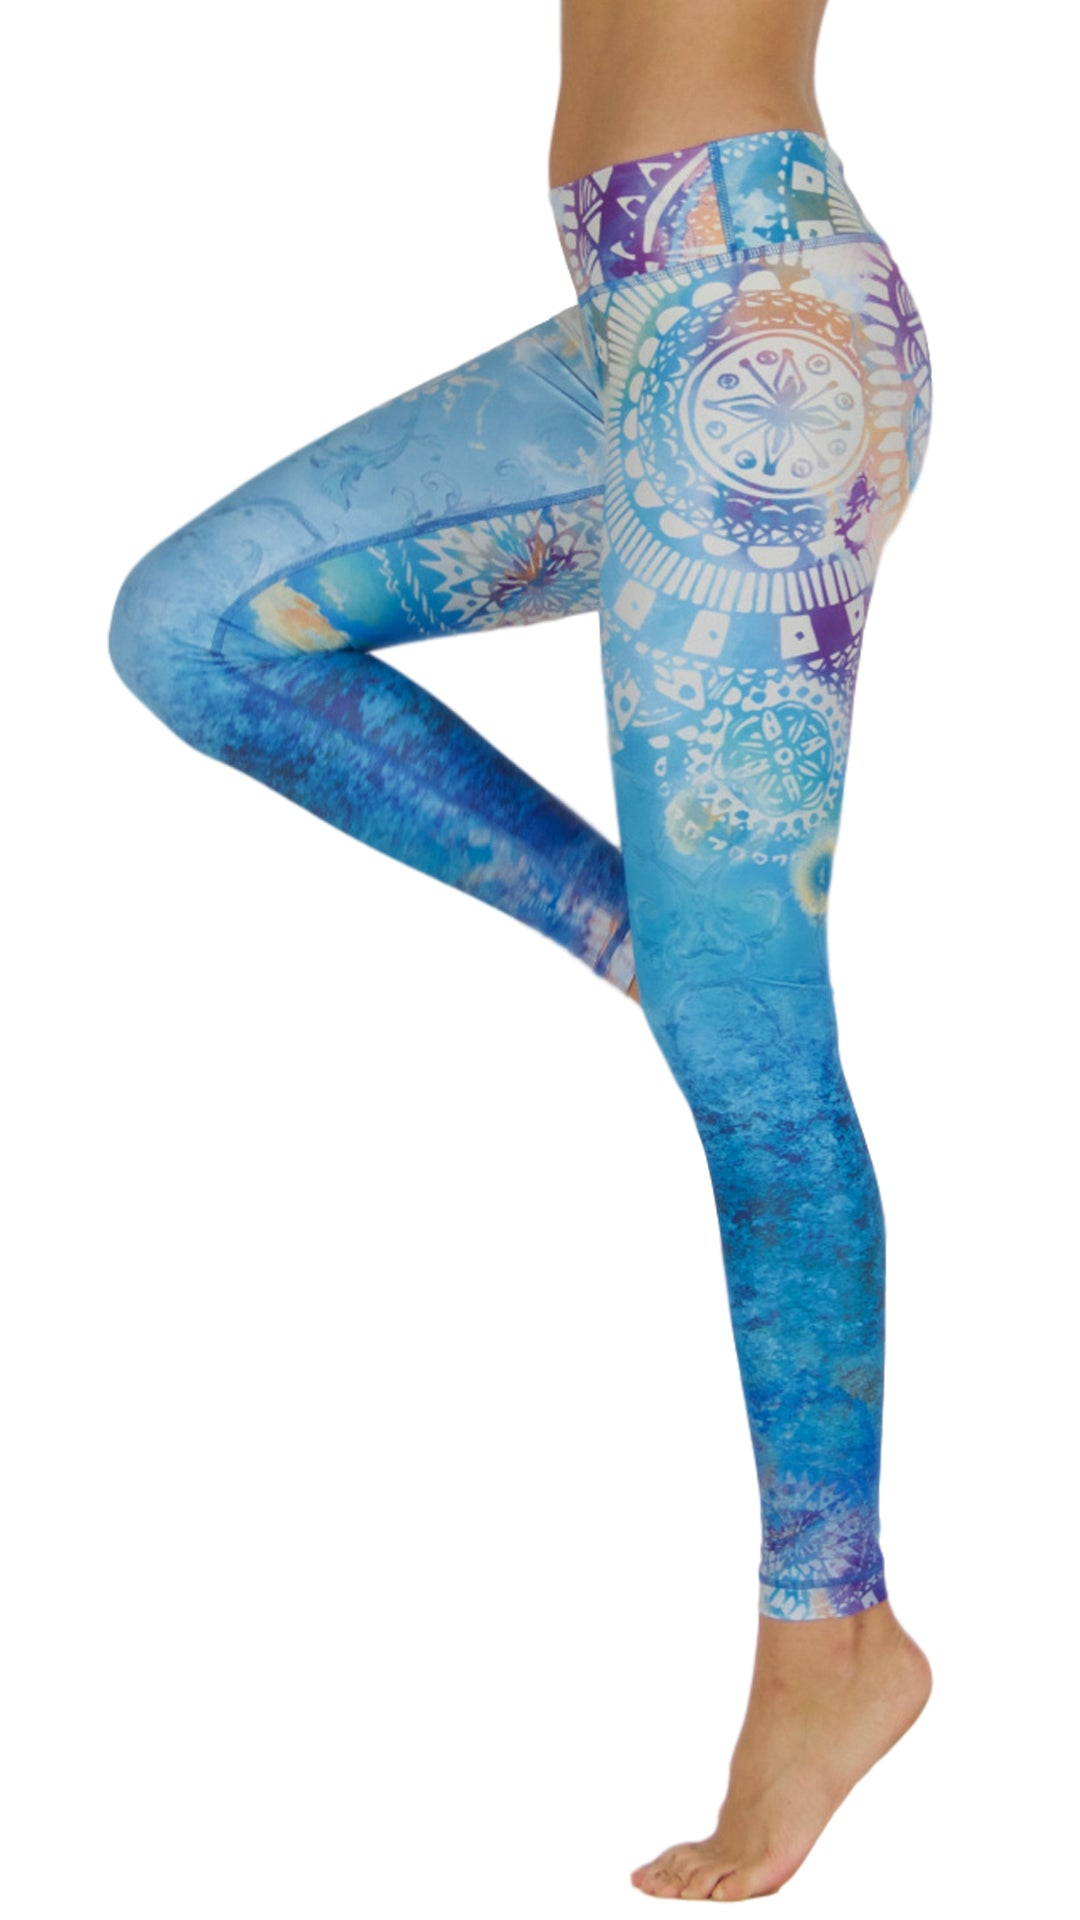 Beautiful Times by Niyama - High Quality, Yoga Legging for Movement Artists.